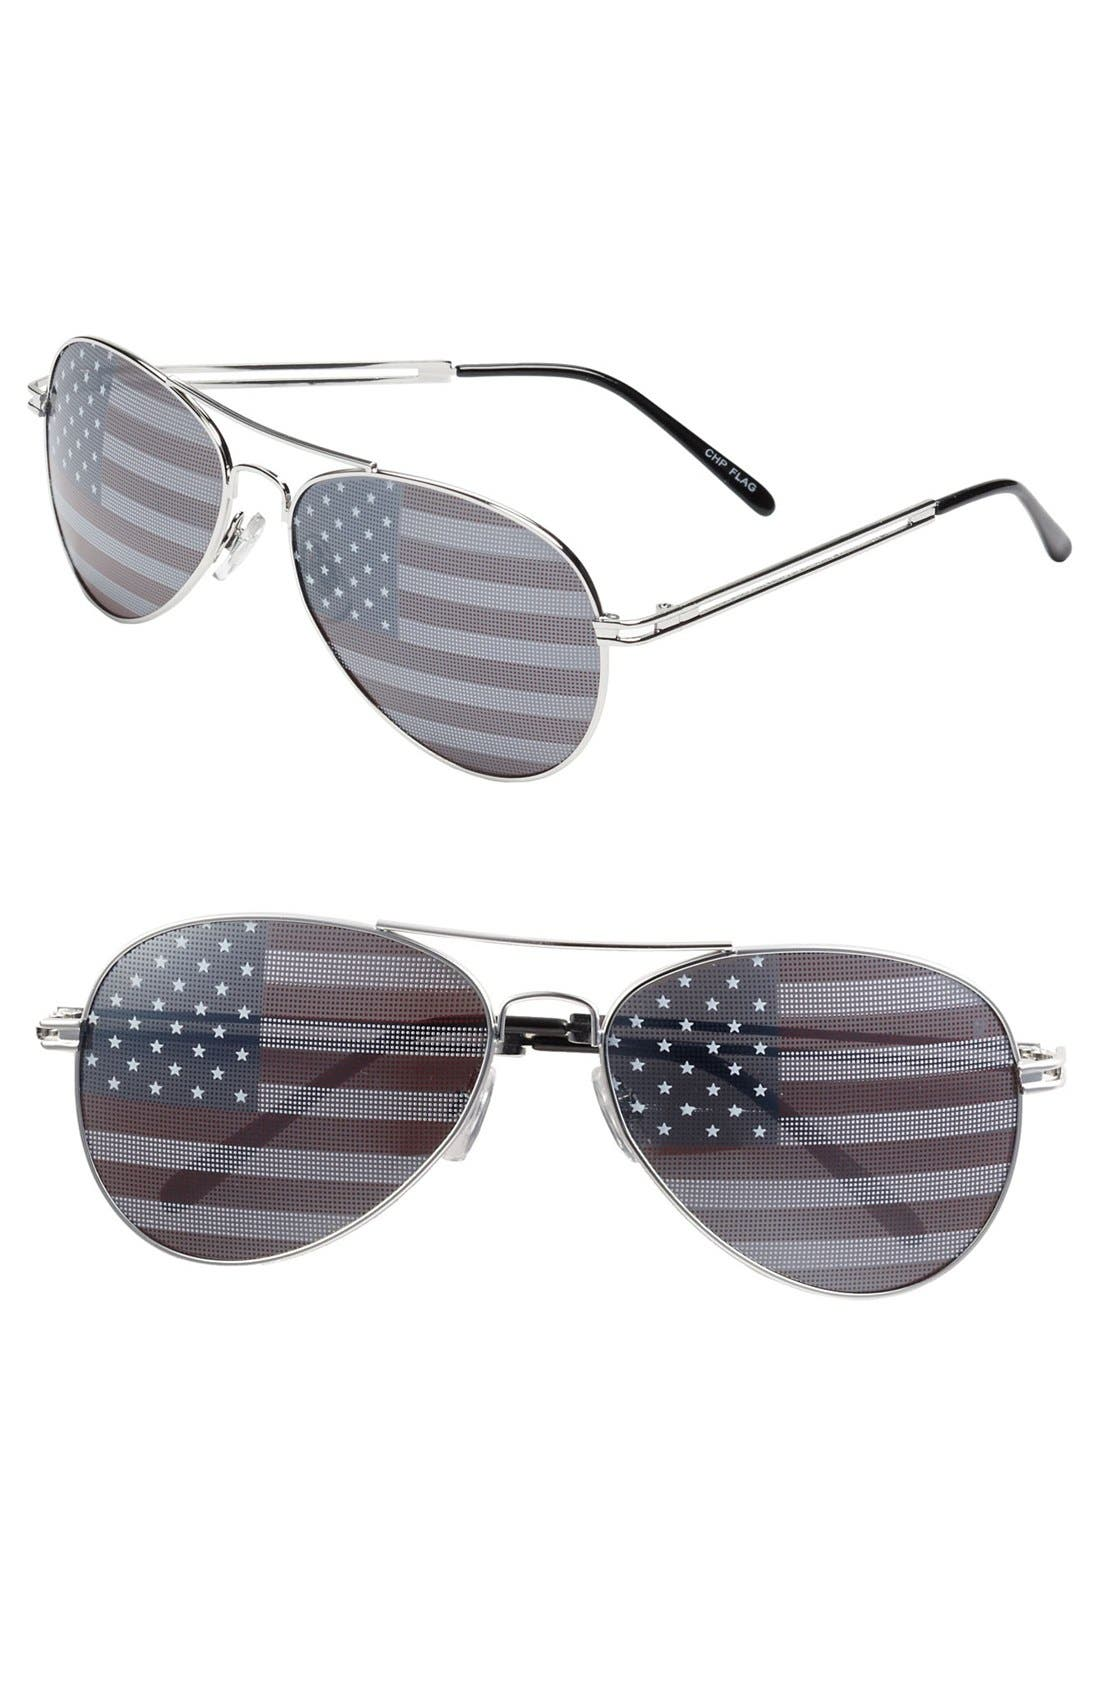 Alternate Image 1 Selected - BP. American Flag Aviator Sunglasses